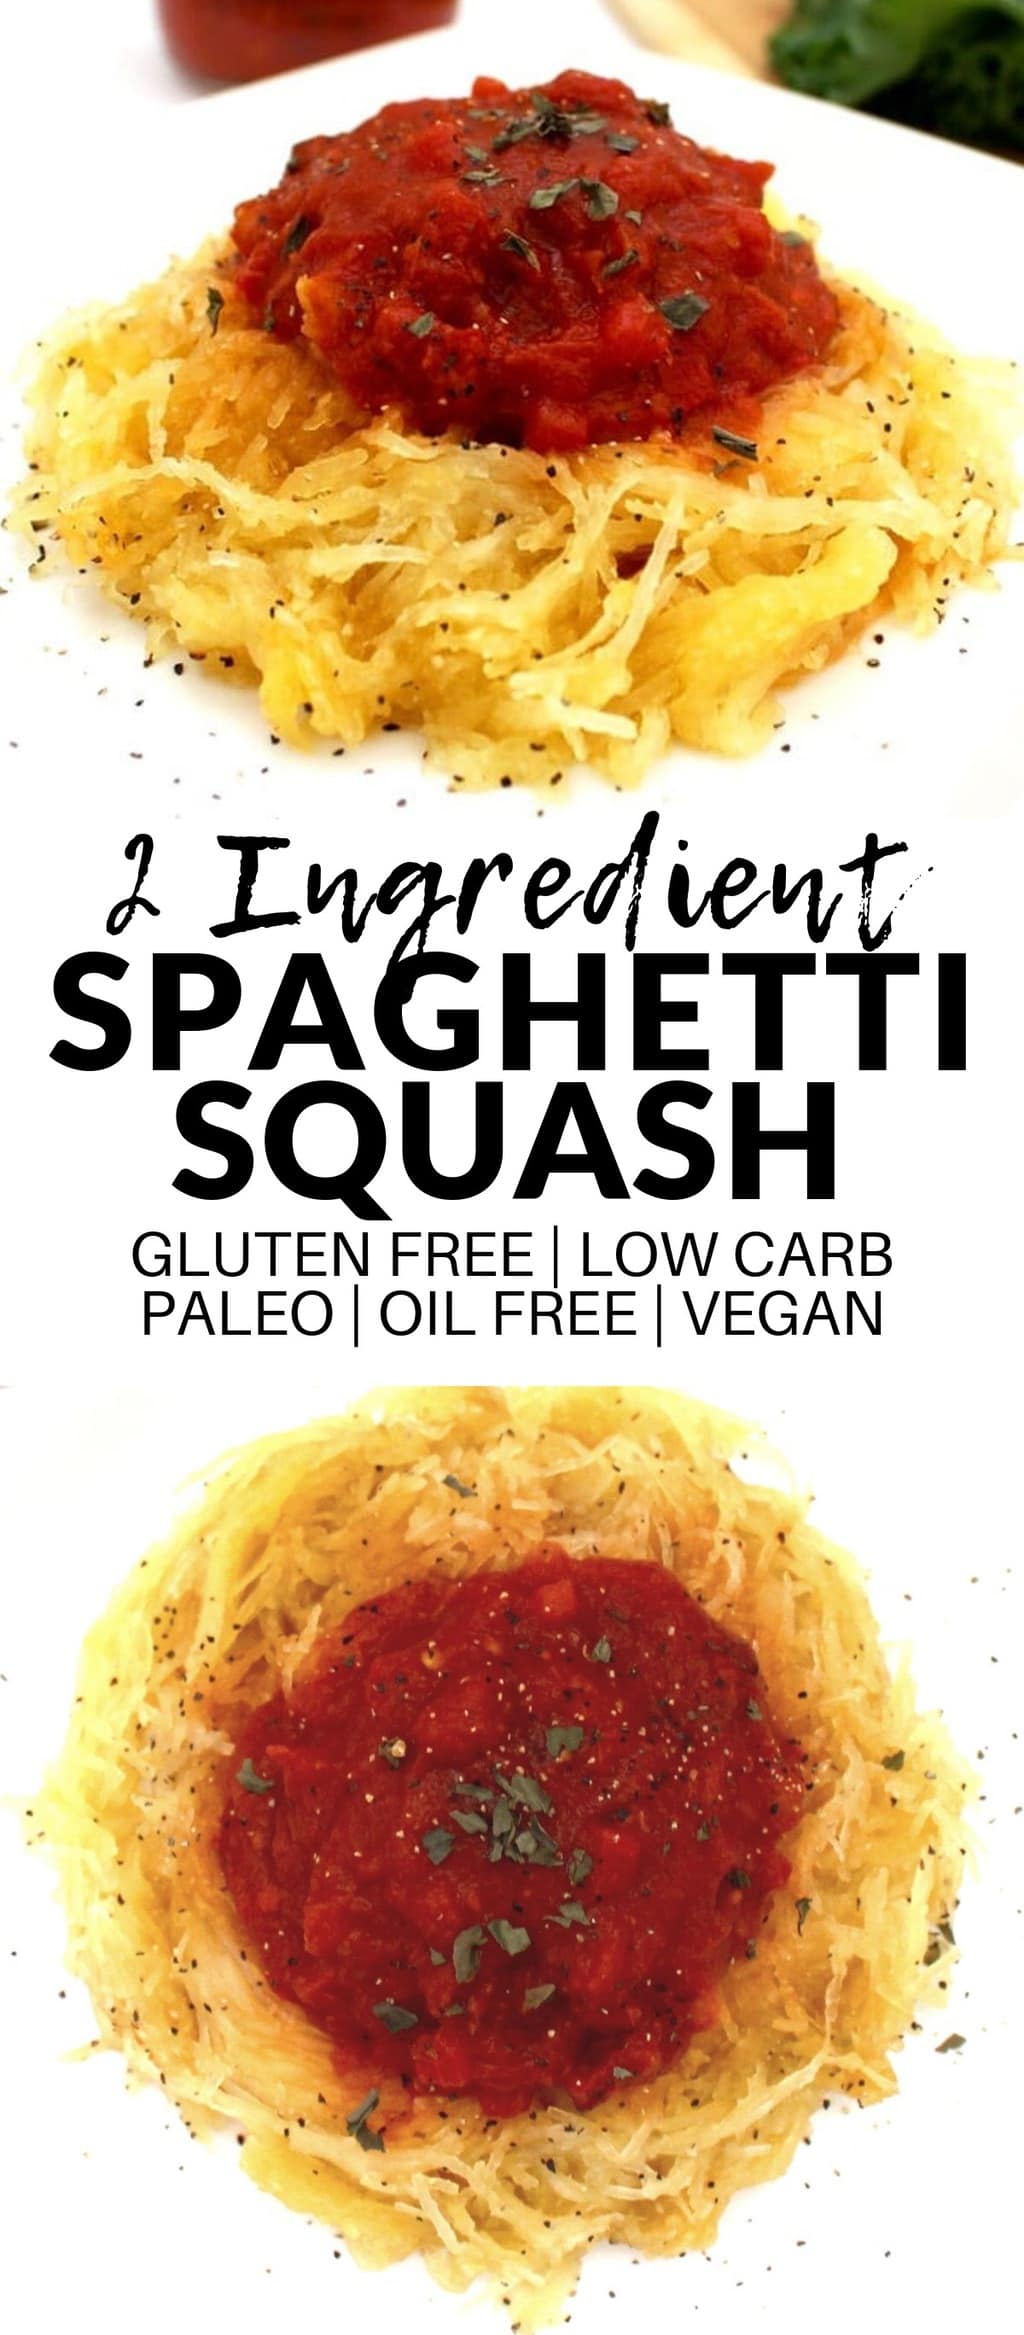 This Simple Spaghetti Squash is the easiest recipe of all time! It only requires two ingredients, and is oh-so-satisfying. Vegan, gluten-free, low-carb, oil-free, paleo, Whole 30 approved, and super low-calorie!